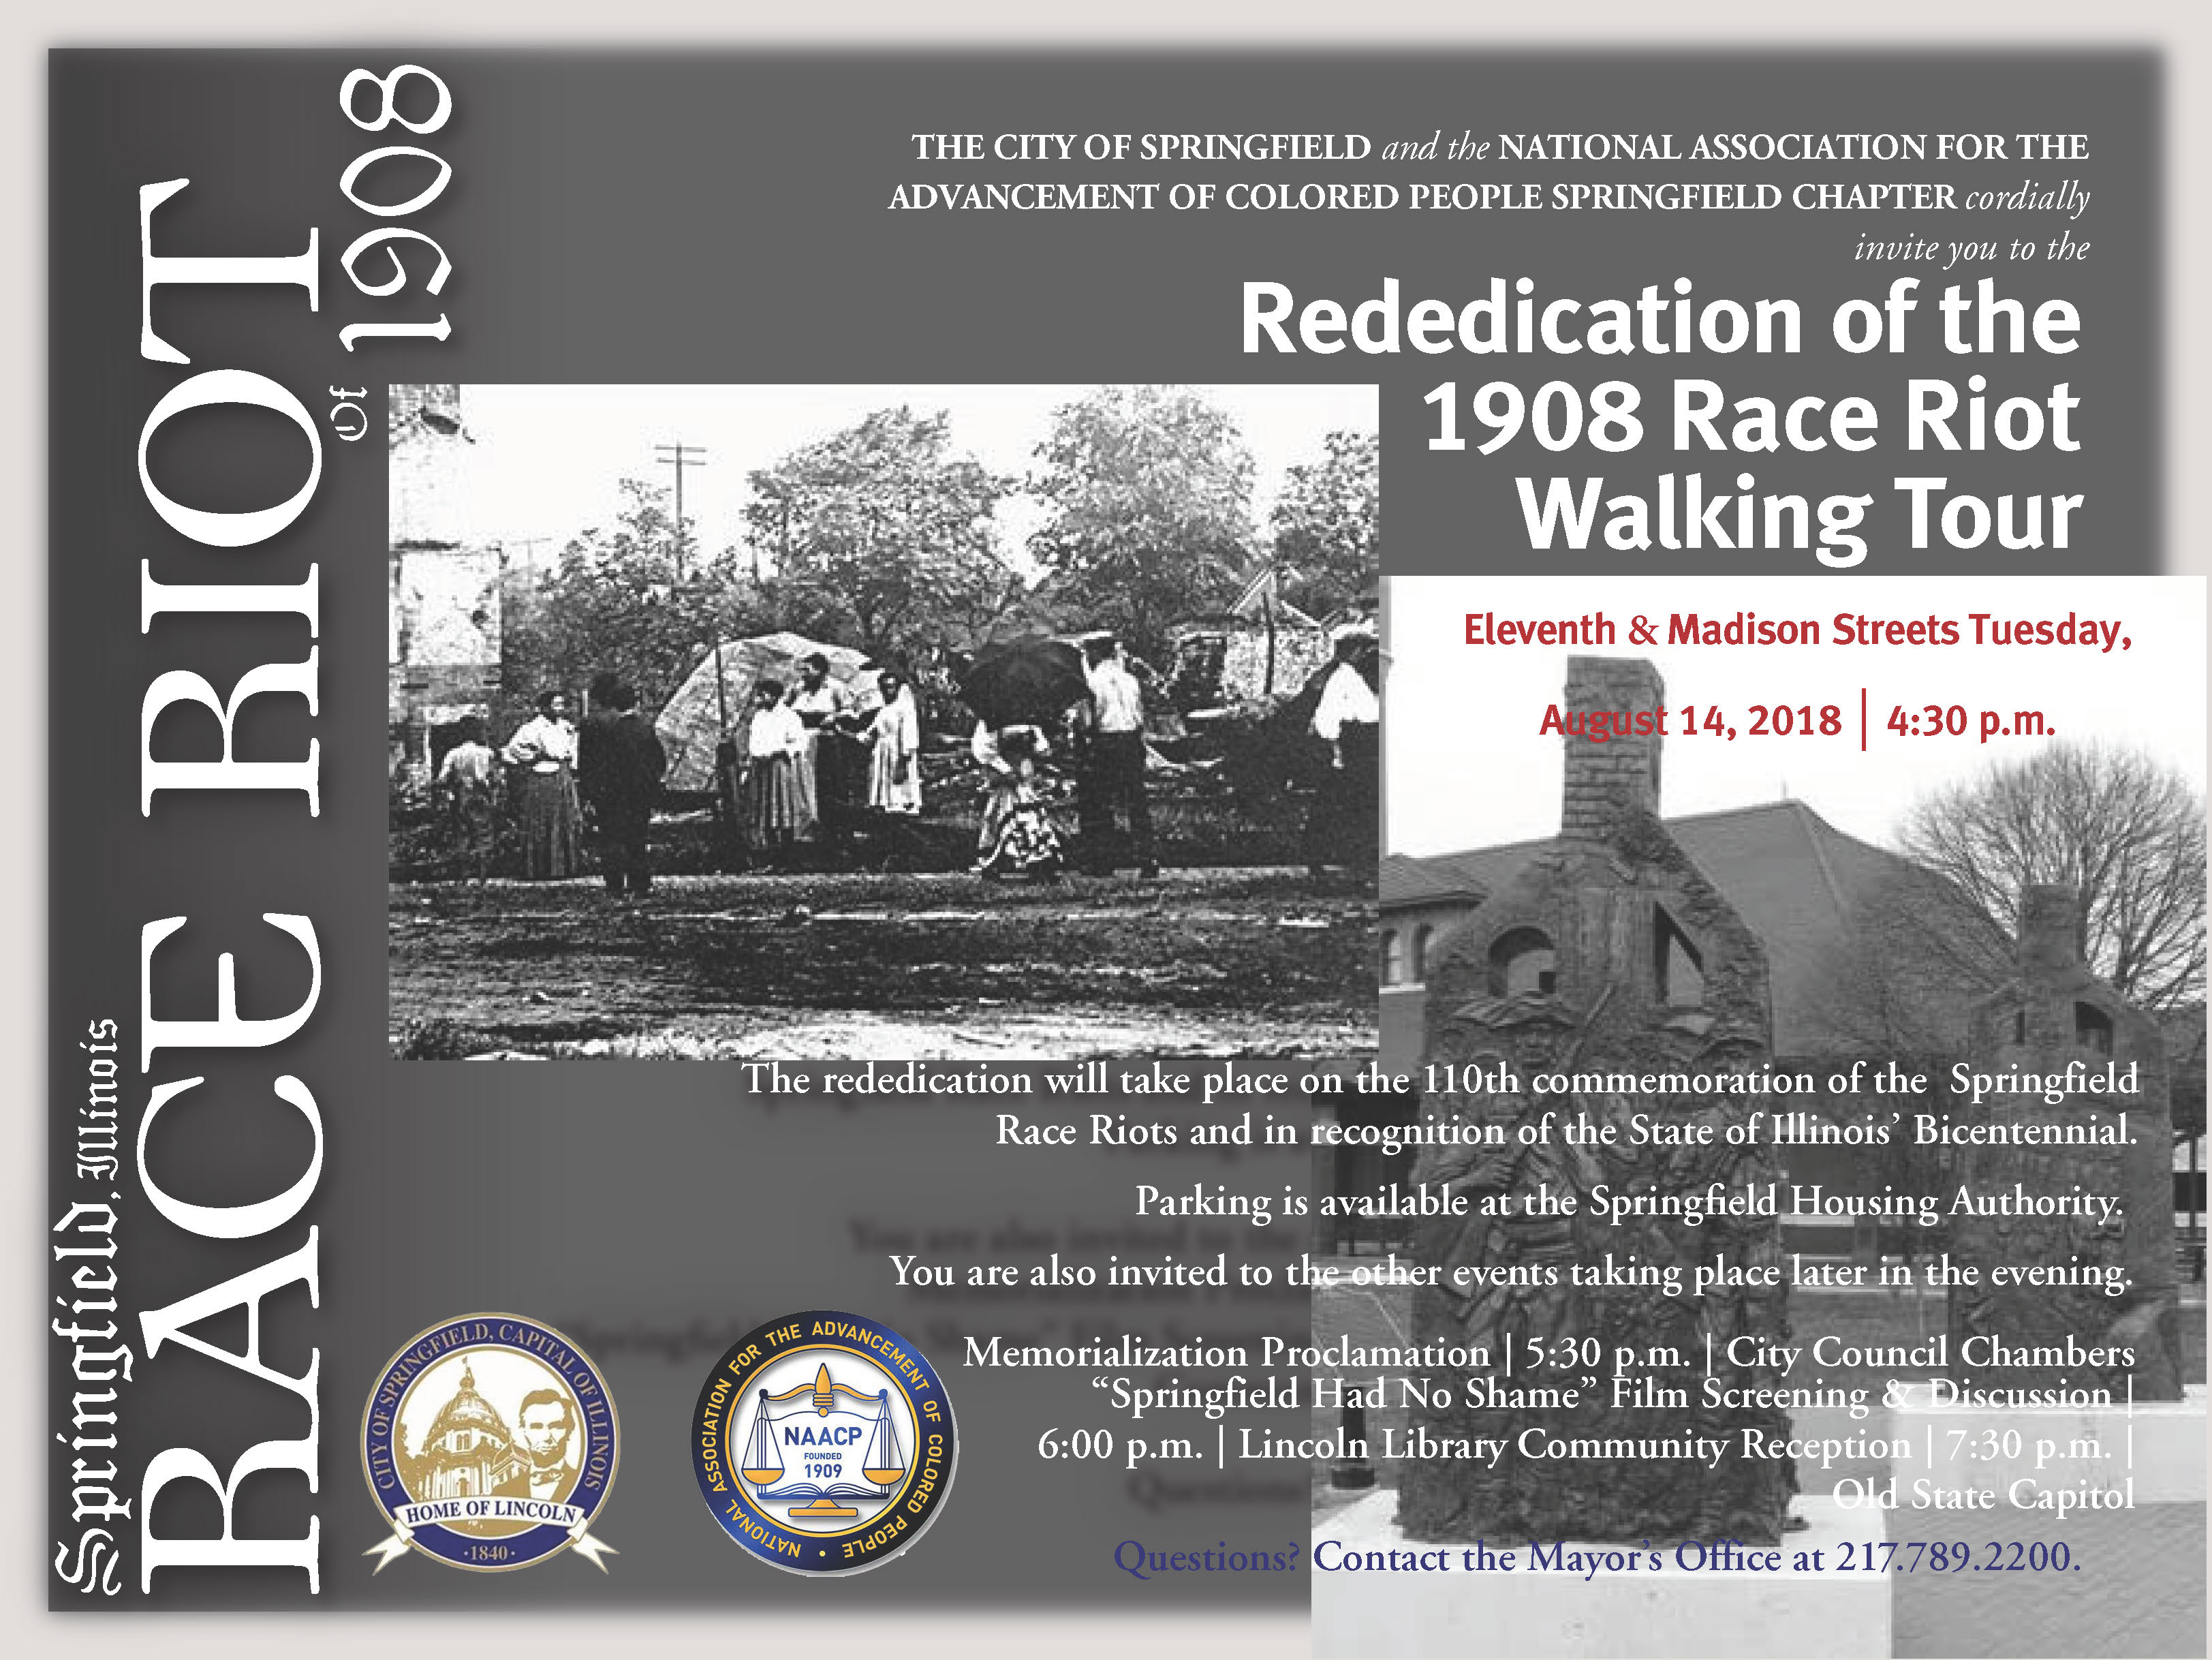 Redeication of the 1908 Race Riot Walking Tour